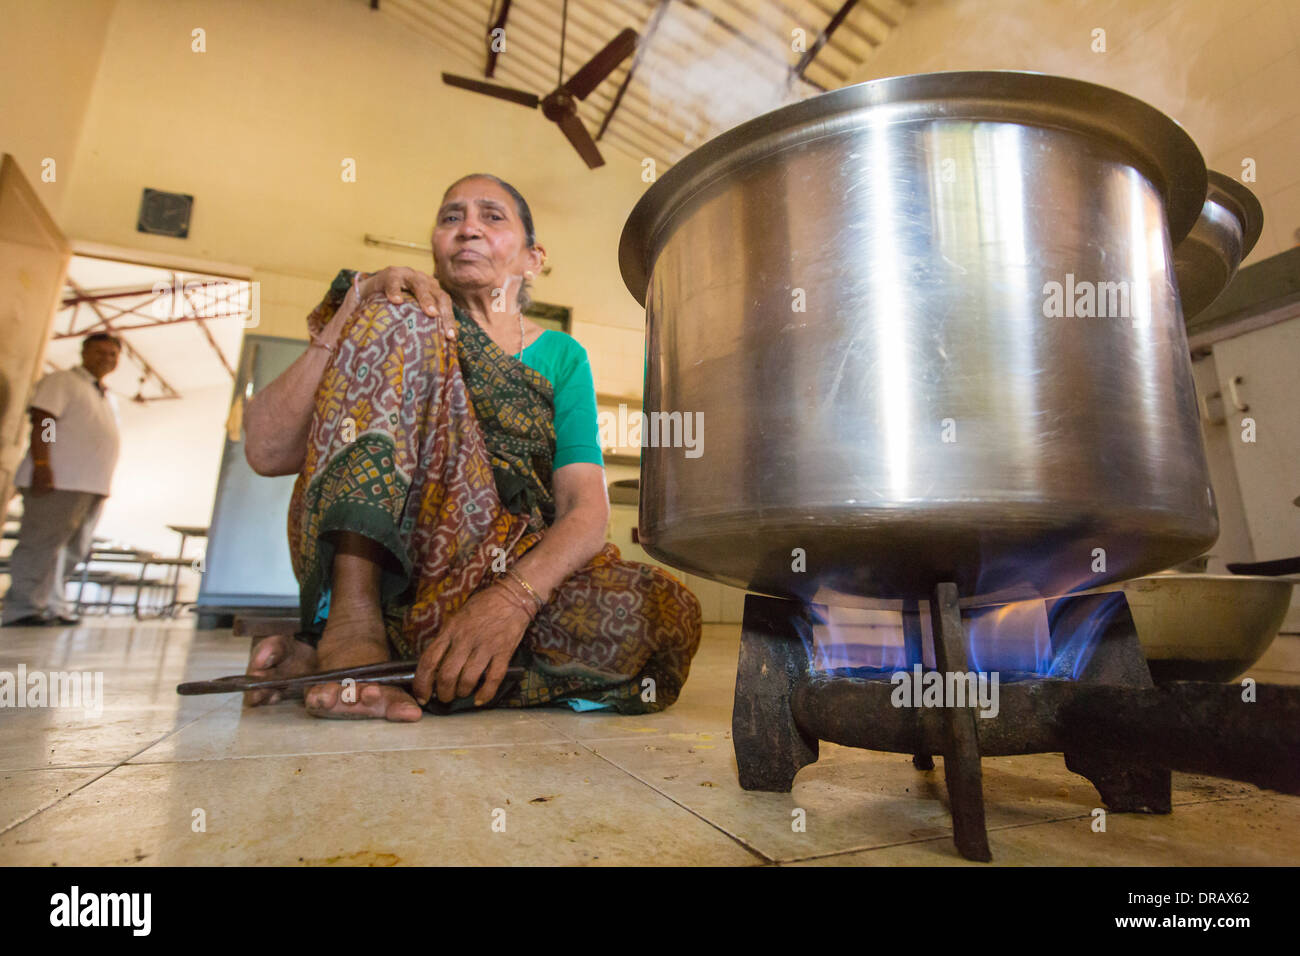 staff in the old folks home kitchen cooking using biogas generated in the grounds. - Stock Image